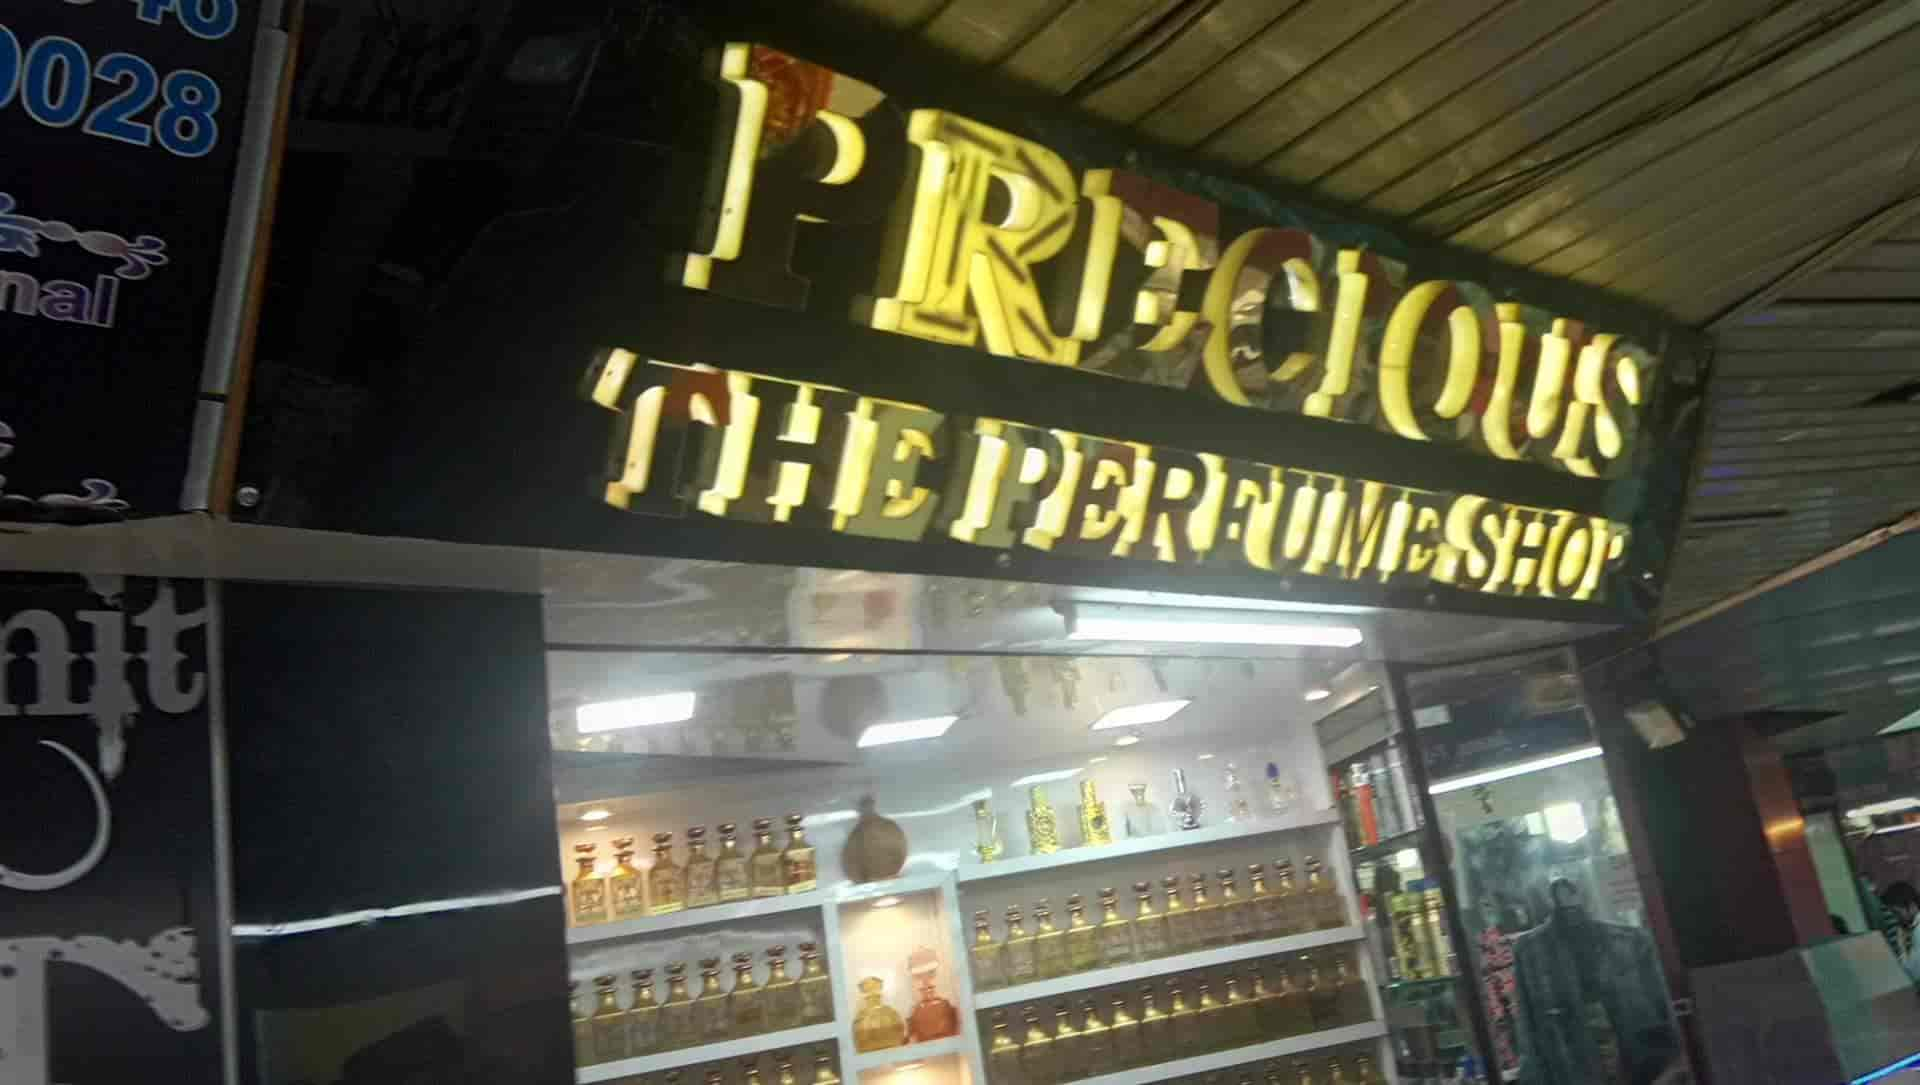 daea29ca4 Precious The Perfume Shop, Goregaon West - Perfume Dealers in Mumbai -  Justdial